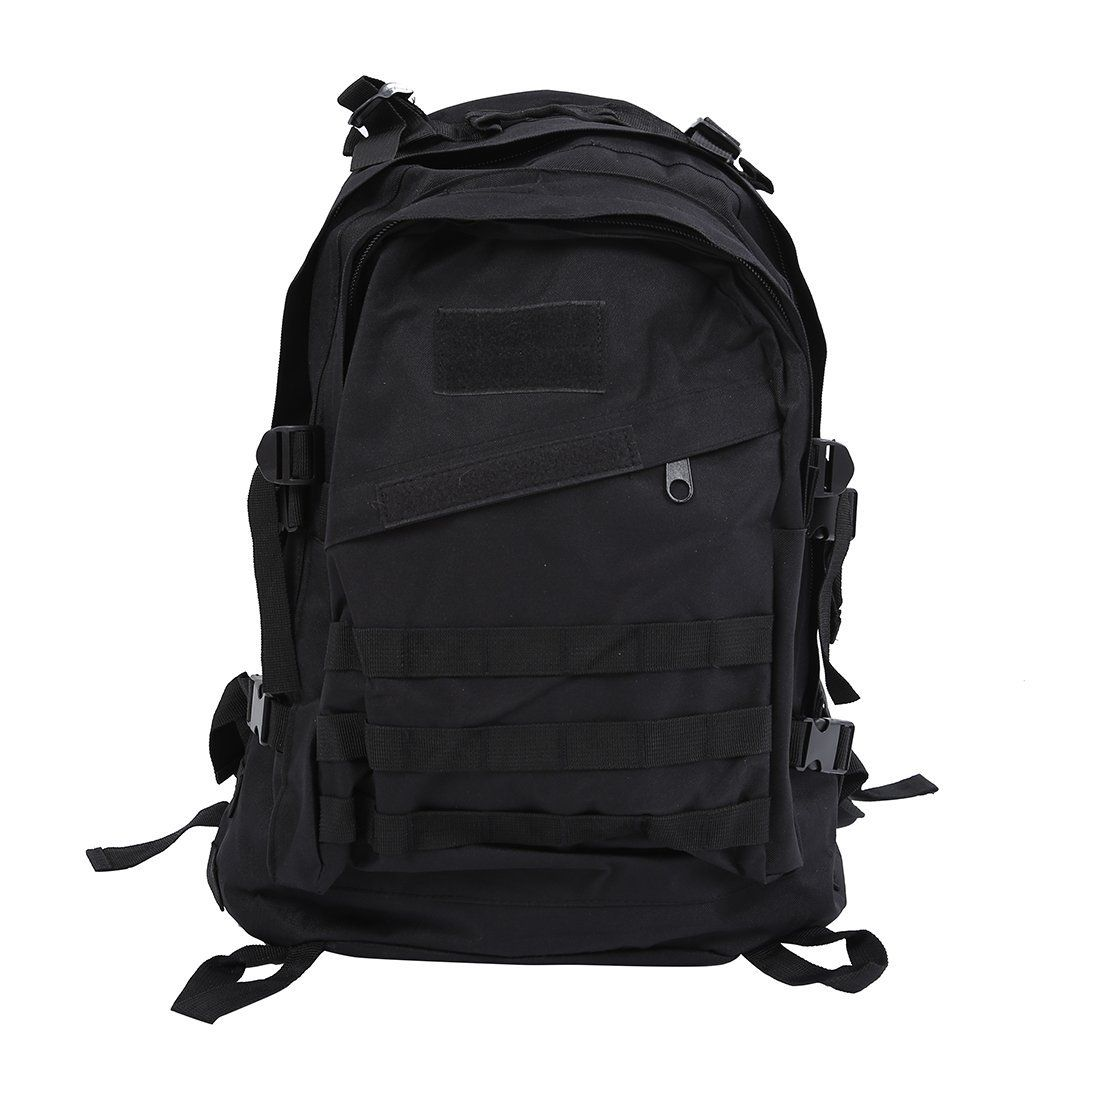 e5b4c3de960a Backpack - SODIAL(R) Outdoor 40L 600D Waterproof Oxford Cloth Military Rucksack  Tactical Backpack Bag ACU Camouflage Sports Travelling Hiking Bag Black      ...